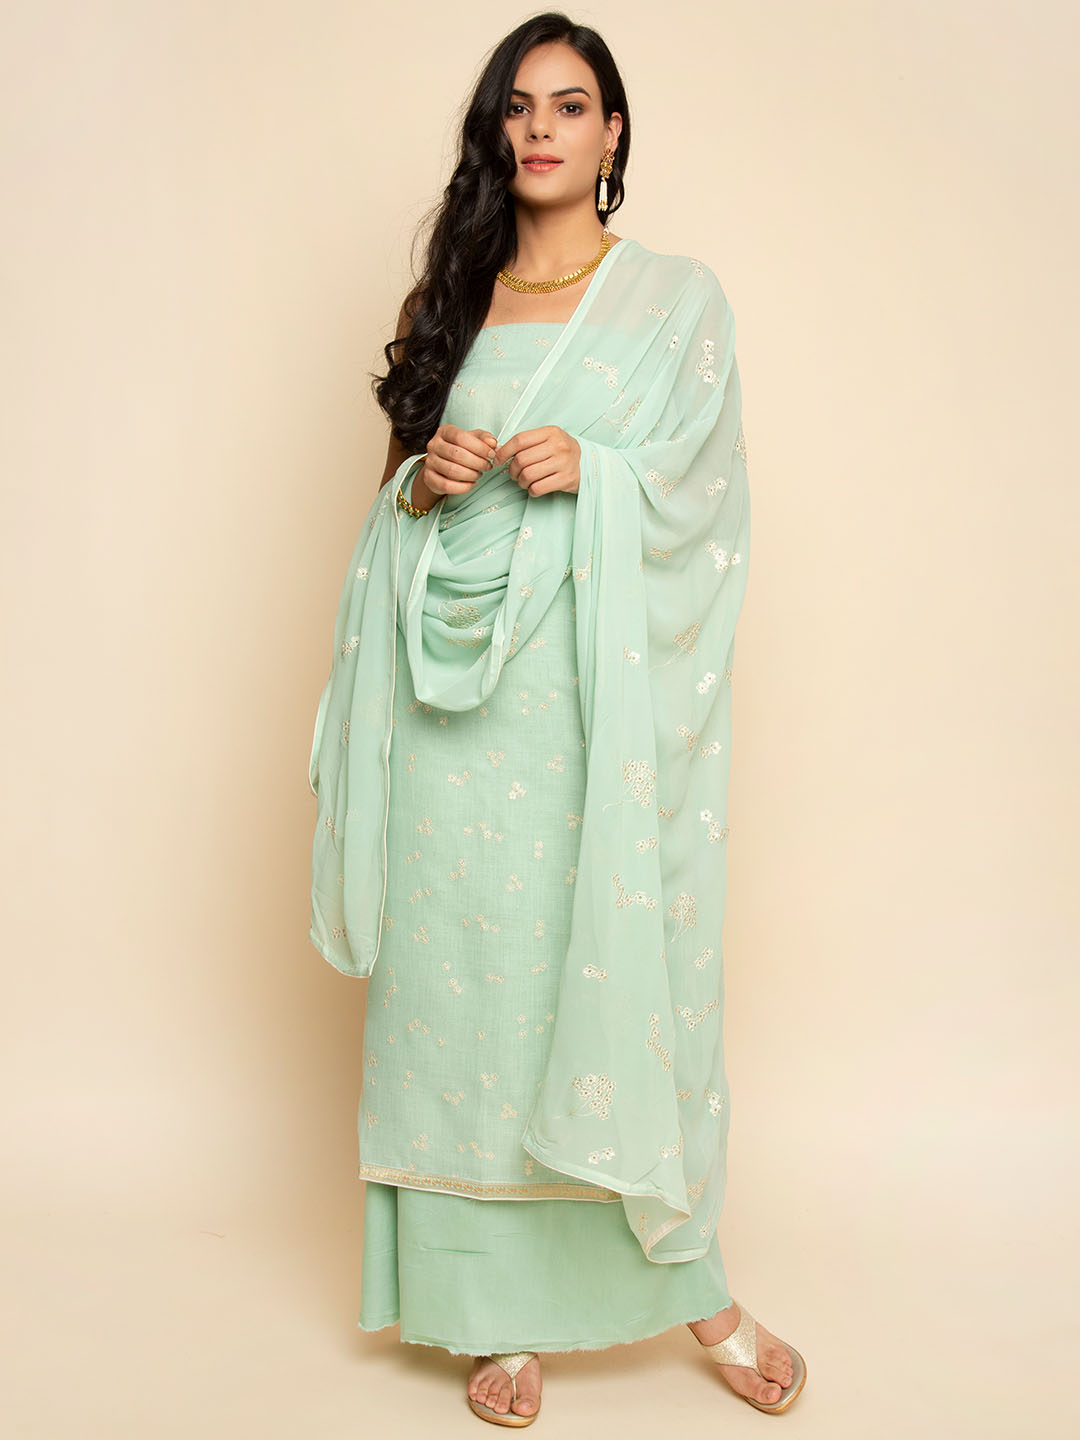 LINEN EMBROIDERY SUIT